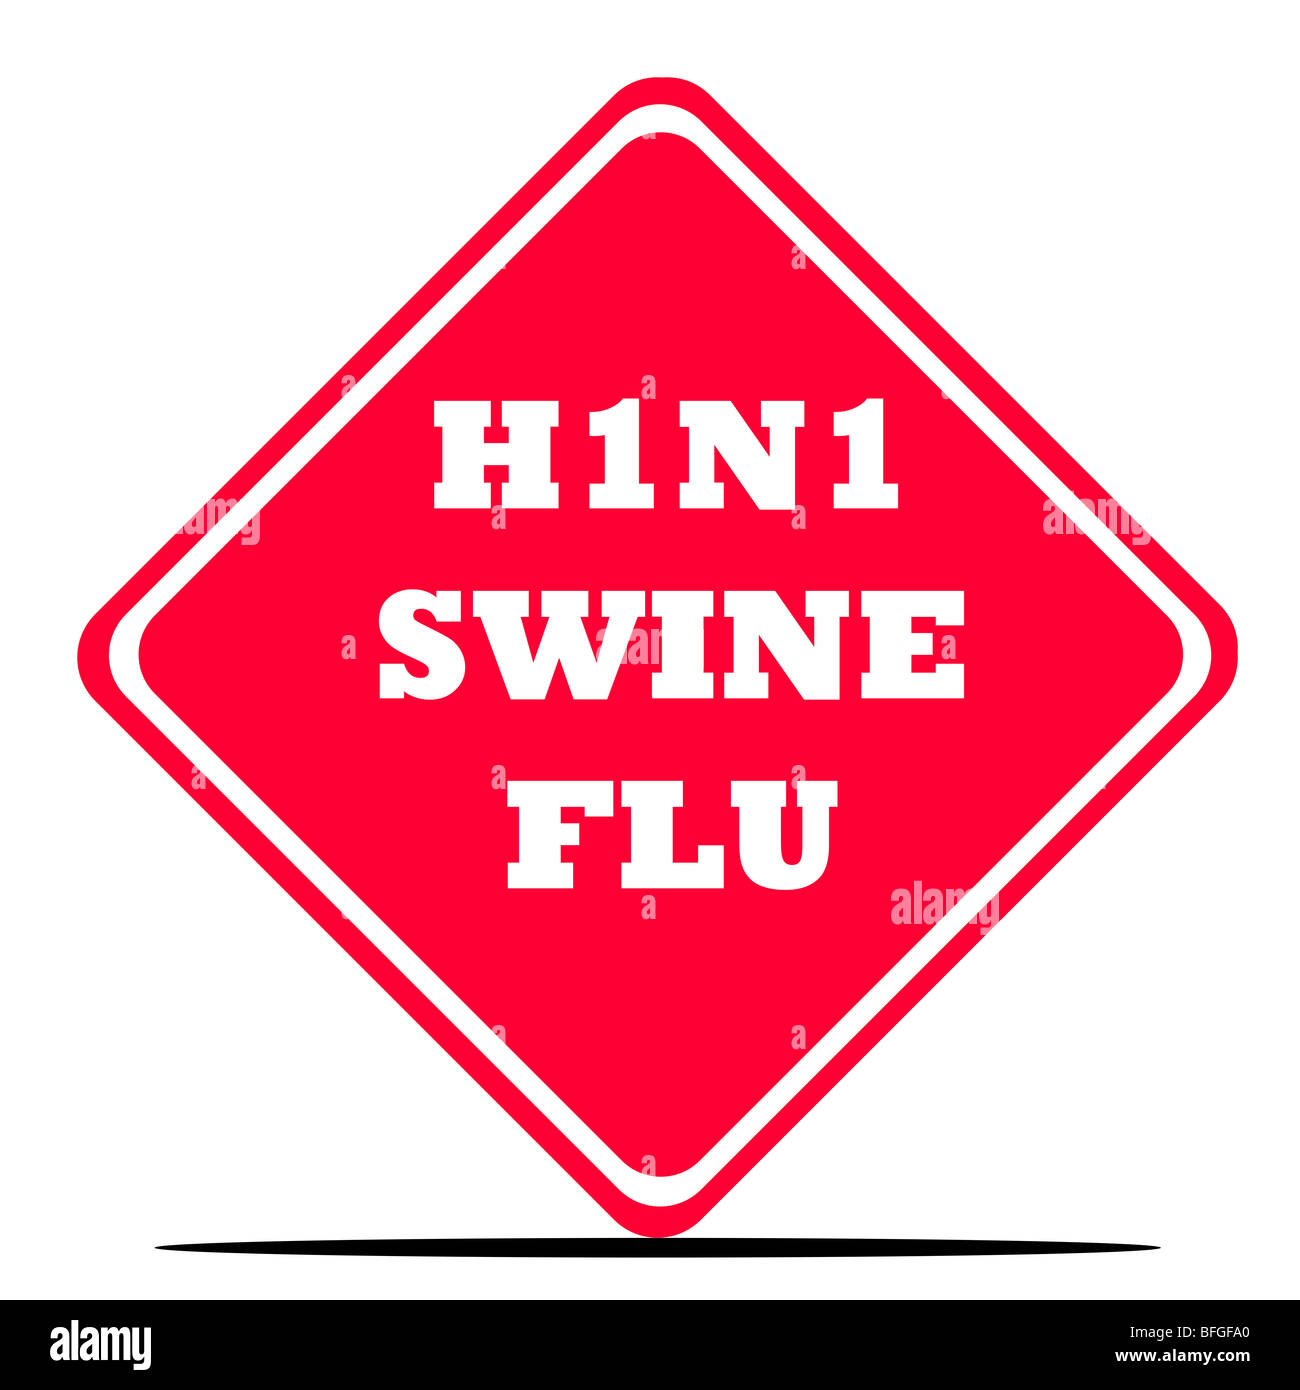 Red H1N1 swine flu diamond shaped sign isolated on white background. - Stock Image